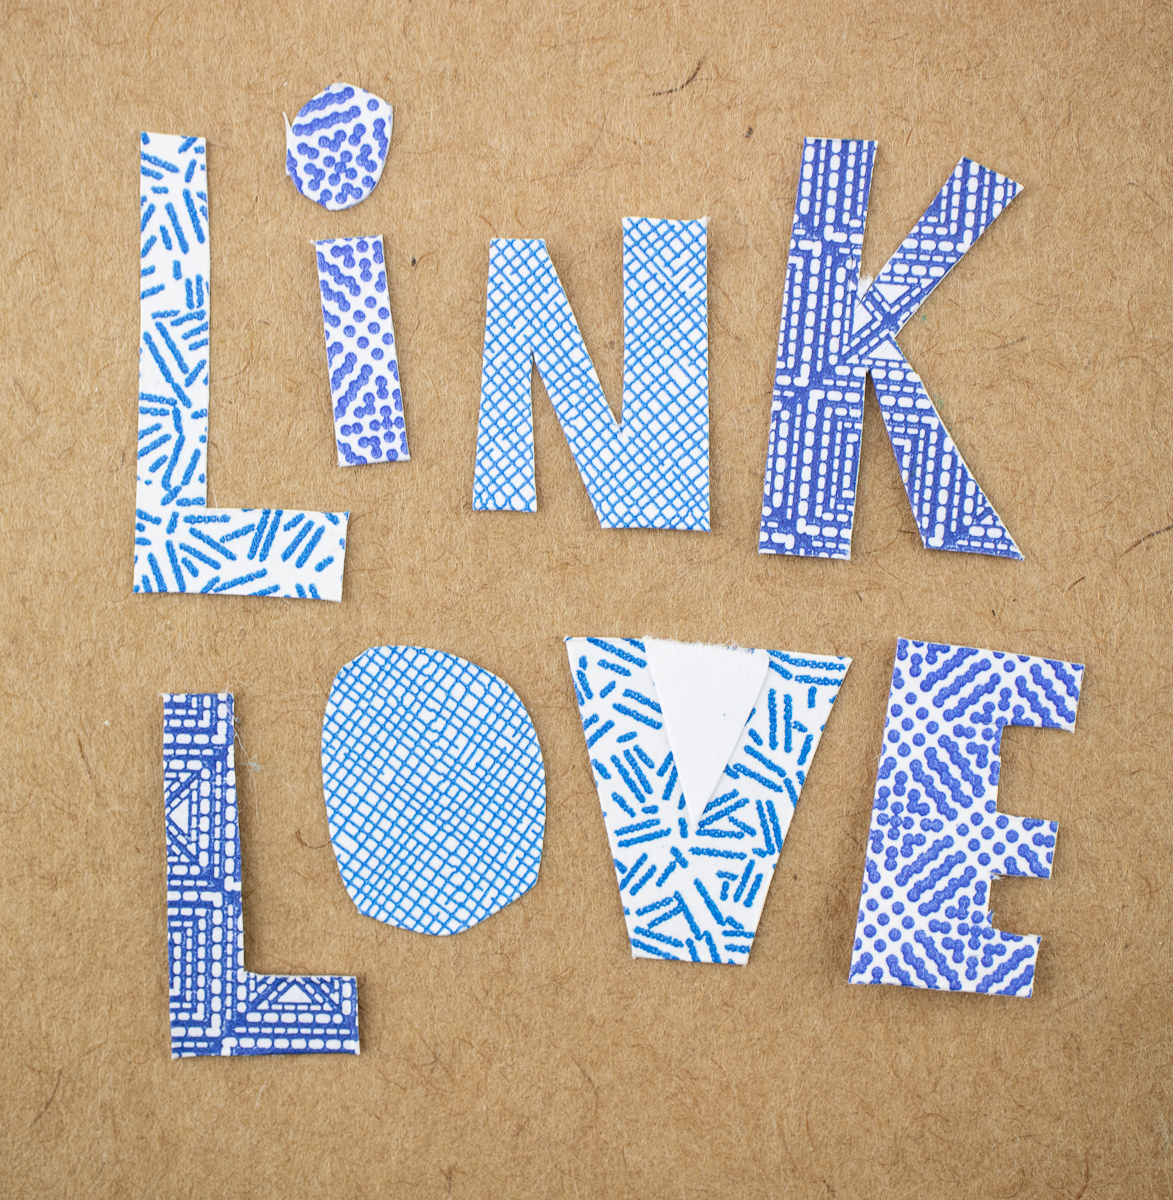 Link Love: A Day Late but Not a Dollar Short